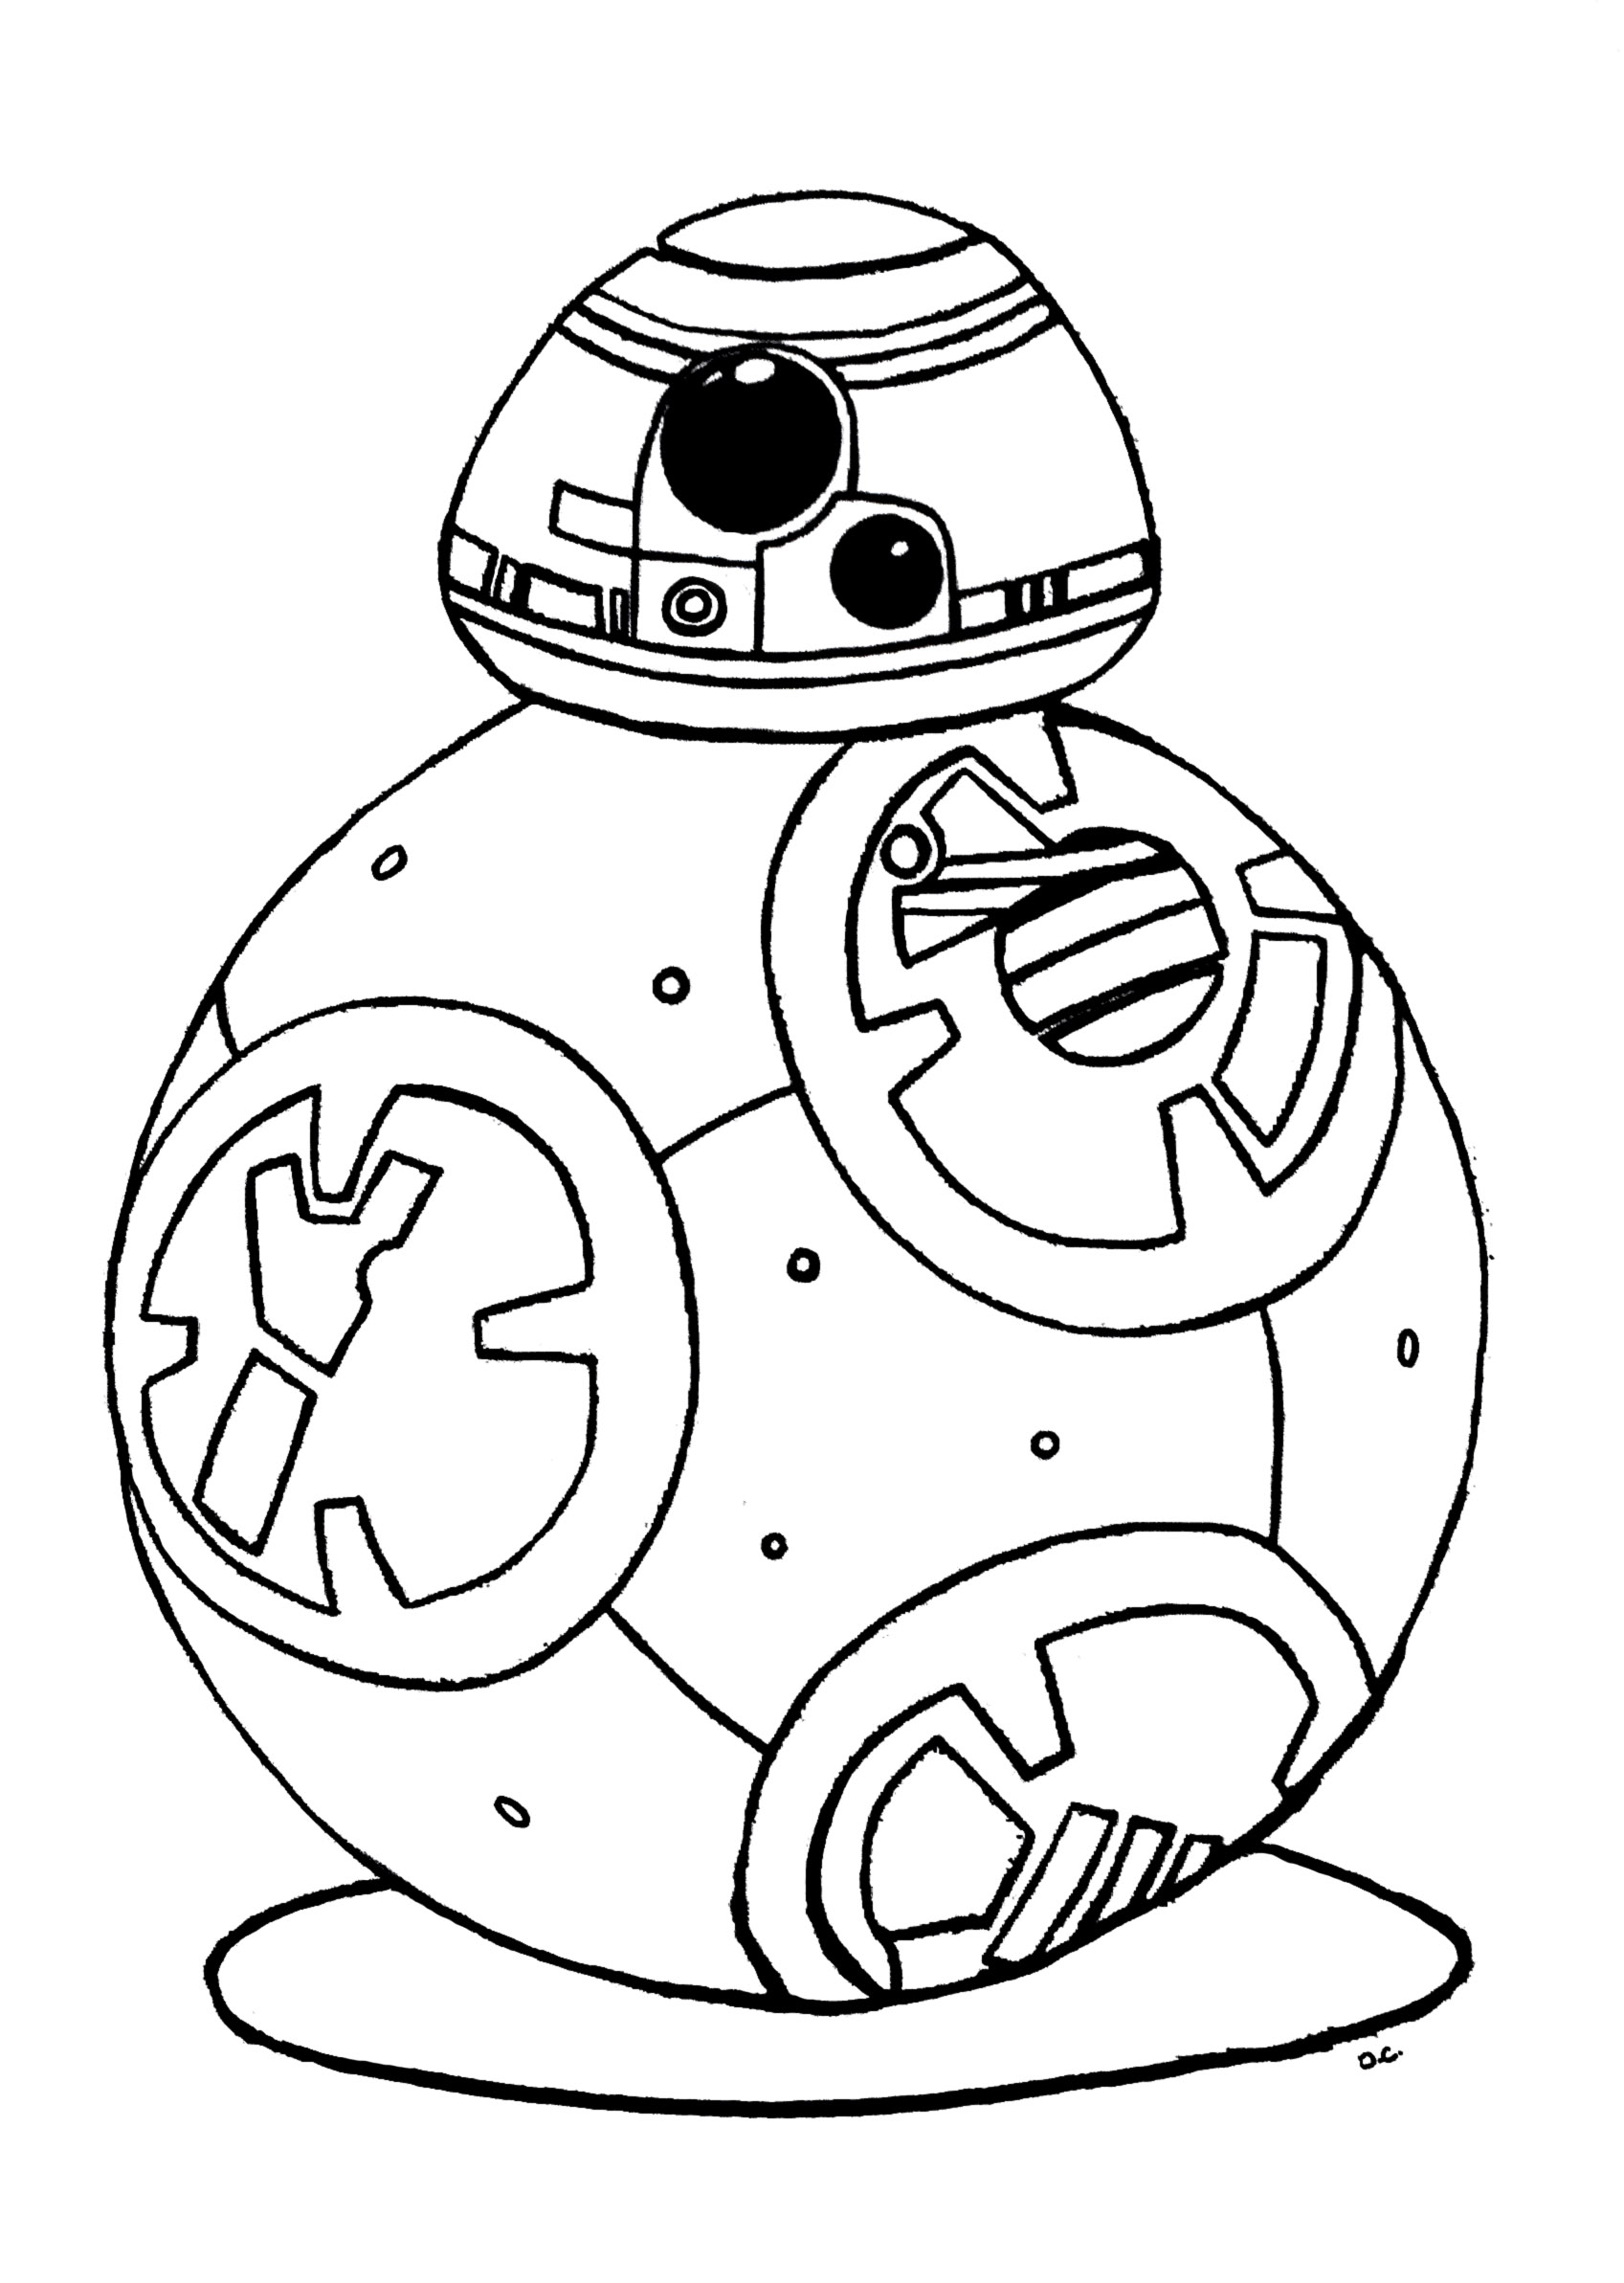 star wars coloring pages for kids star wars free to color for kids star wars kids coloring coloring for star kids pages wars